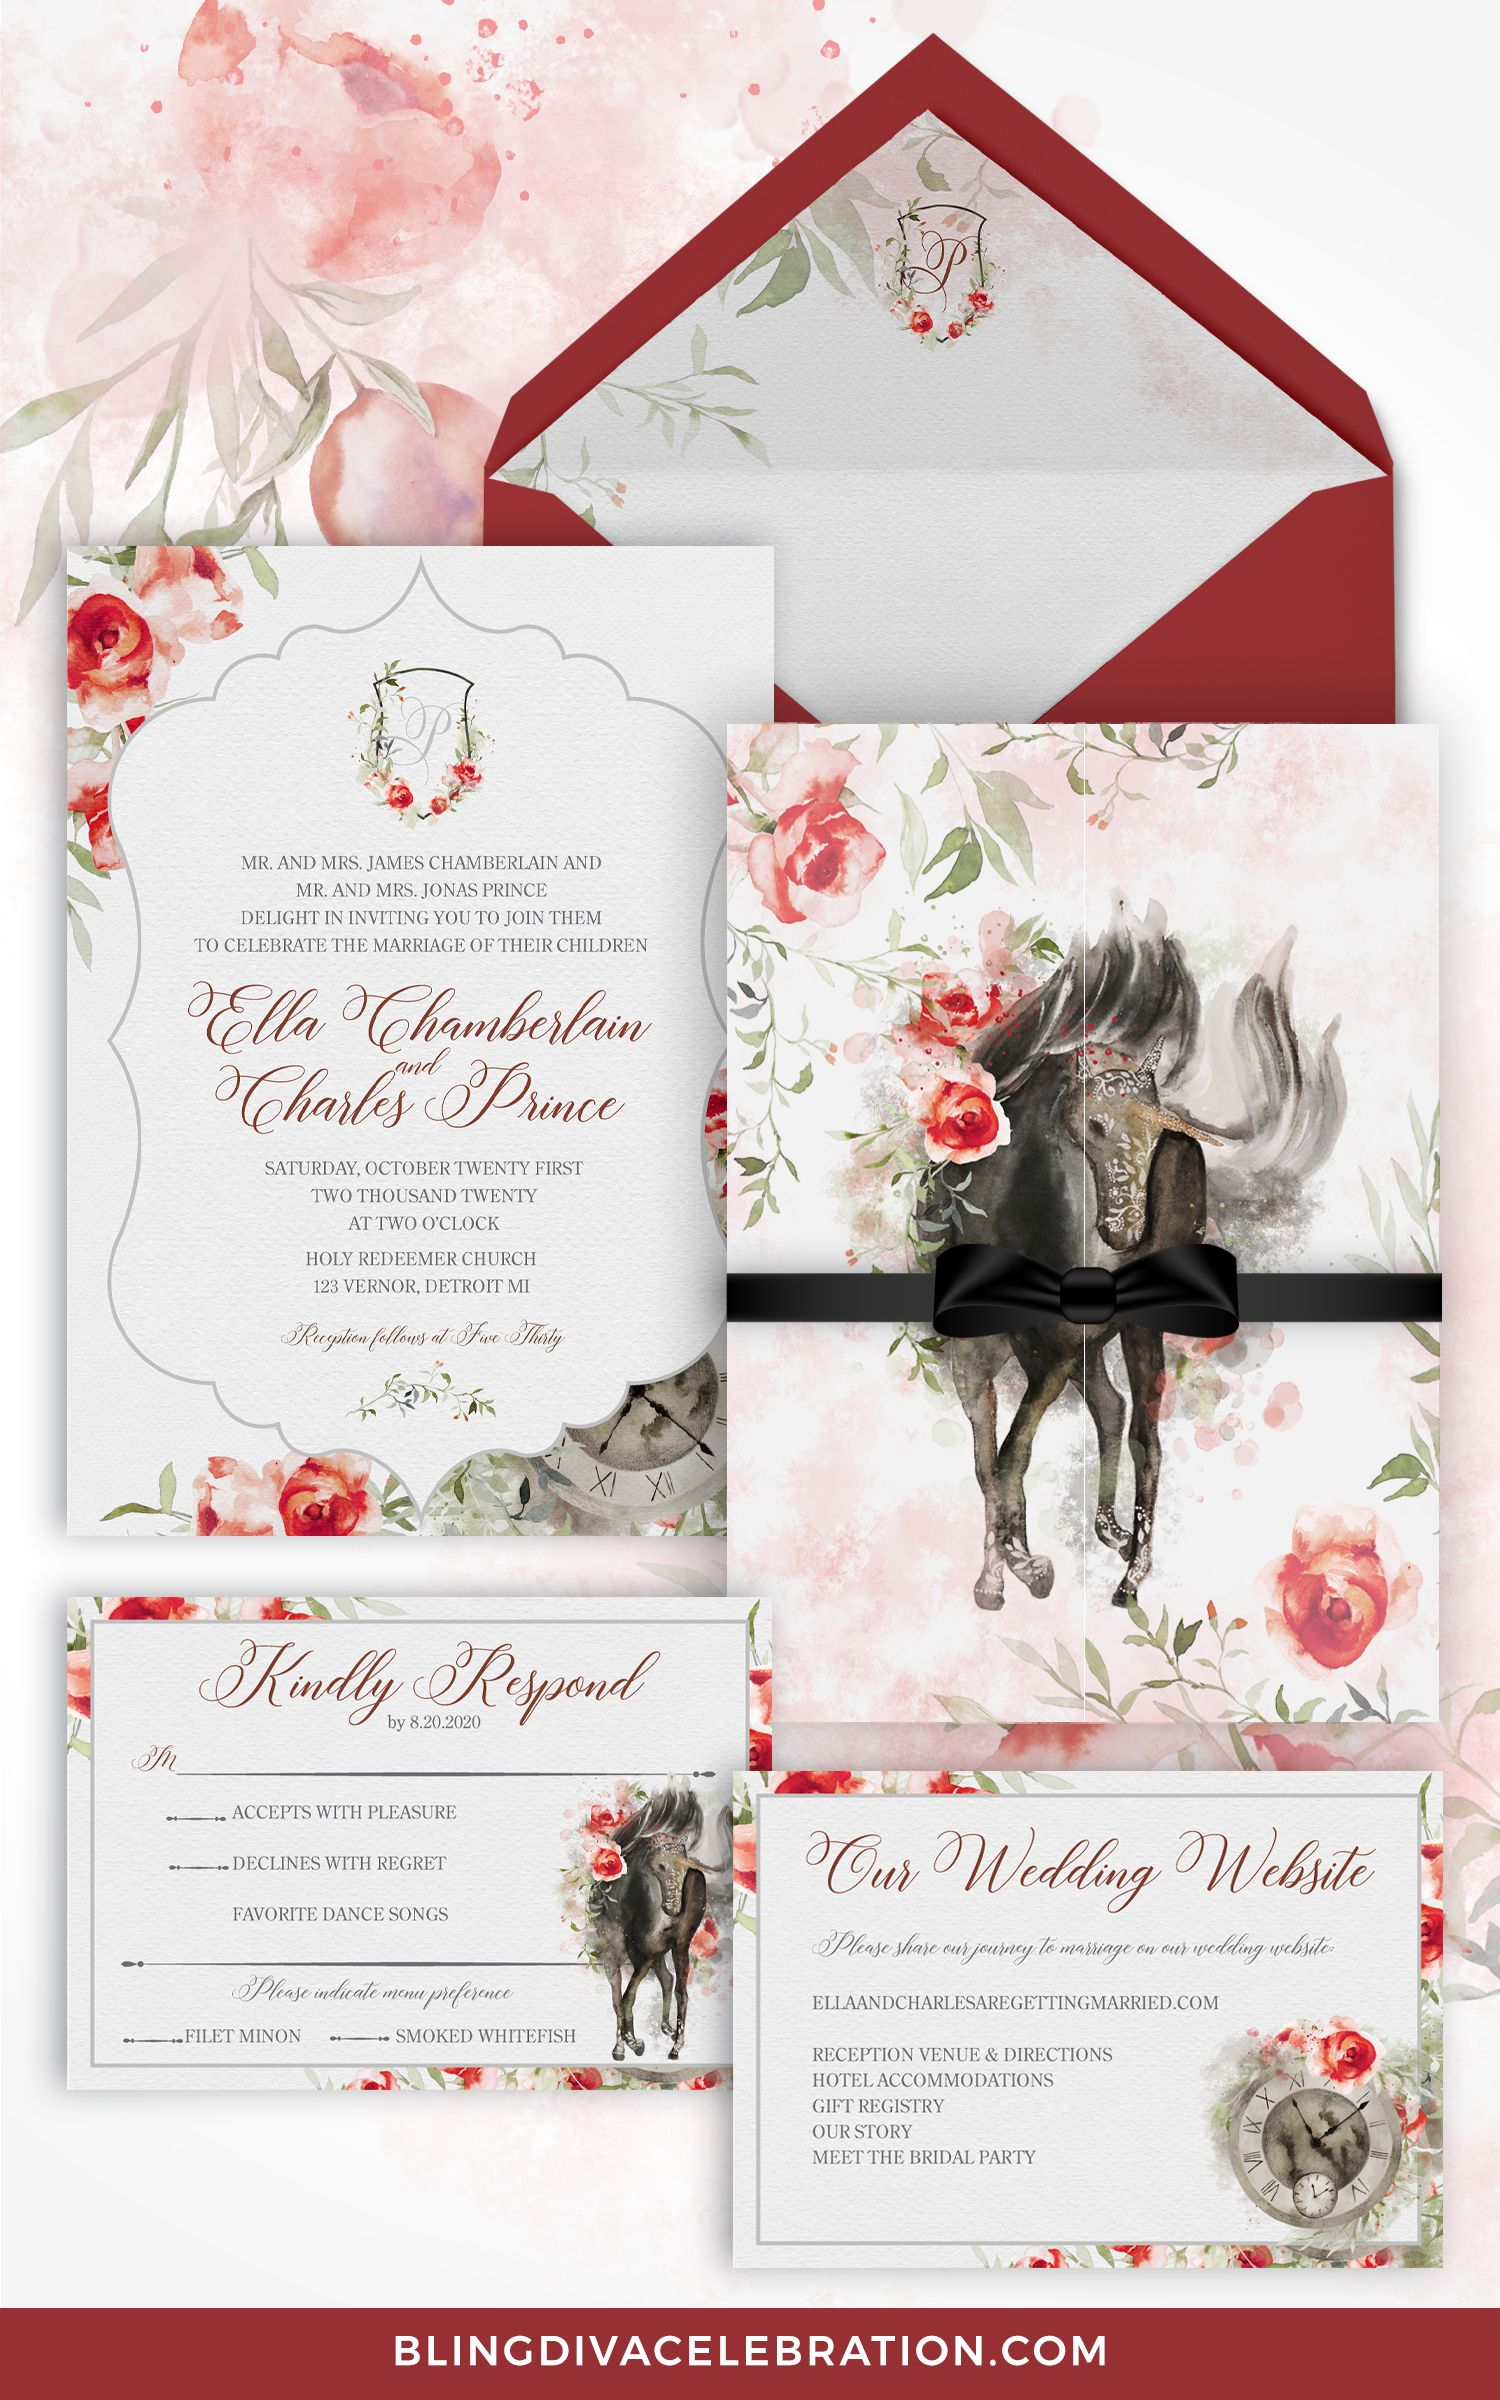 Holy Redeemer Halloween Party 2020 Fairytale Wedding Invitation Suite   Fairytale Wedding Theme   Red